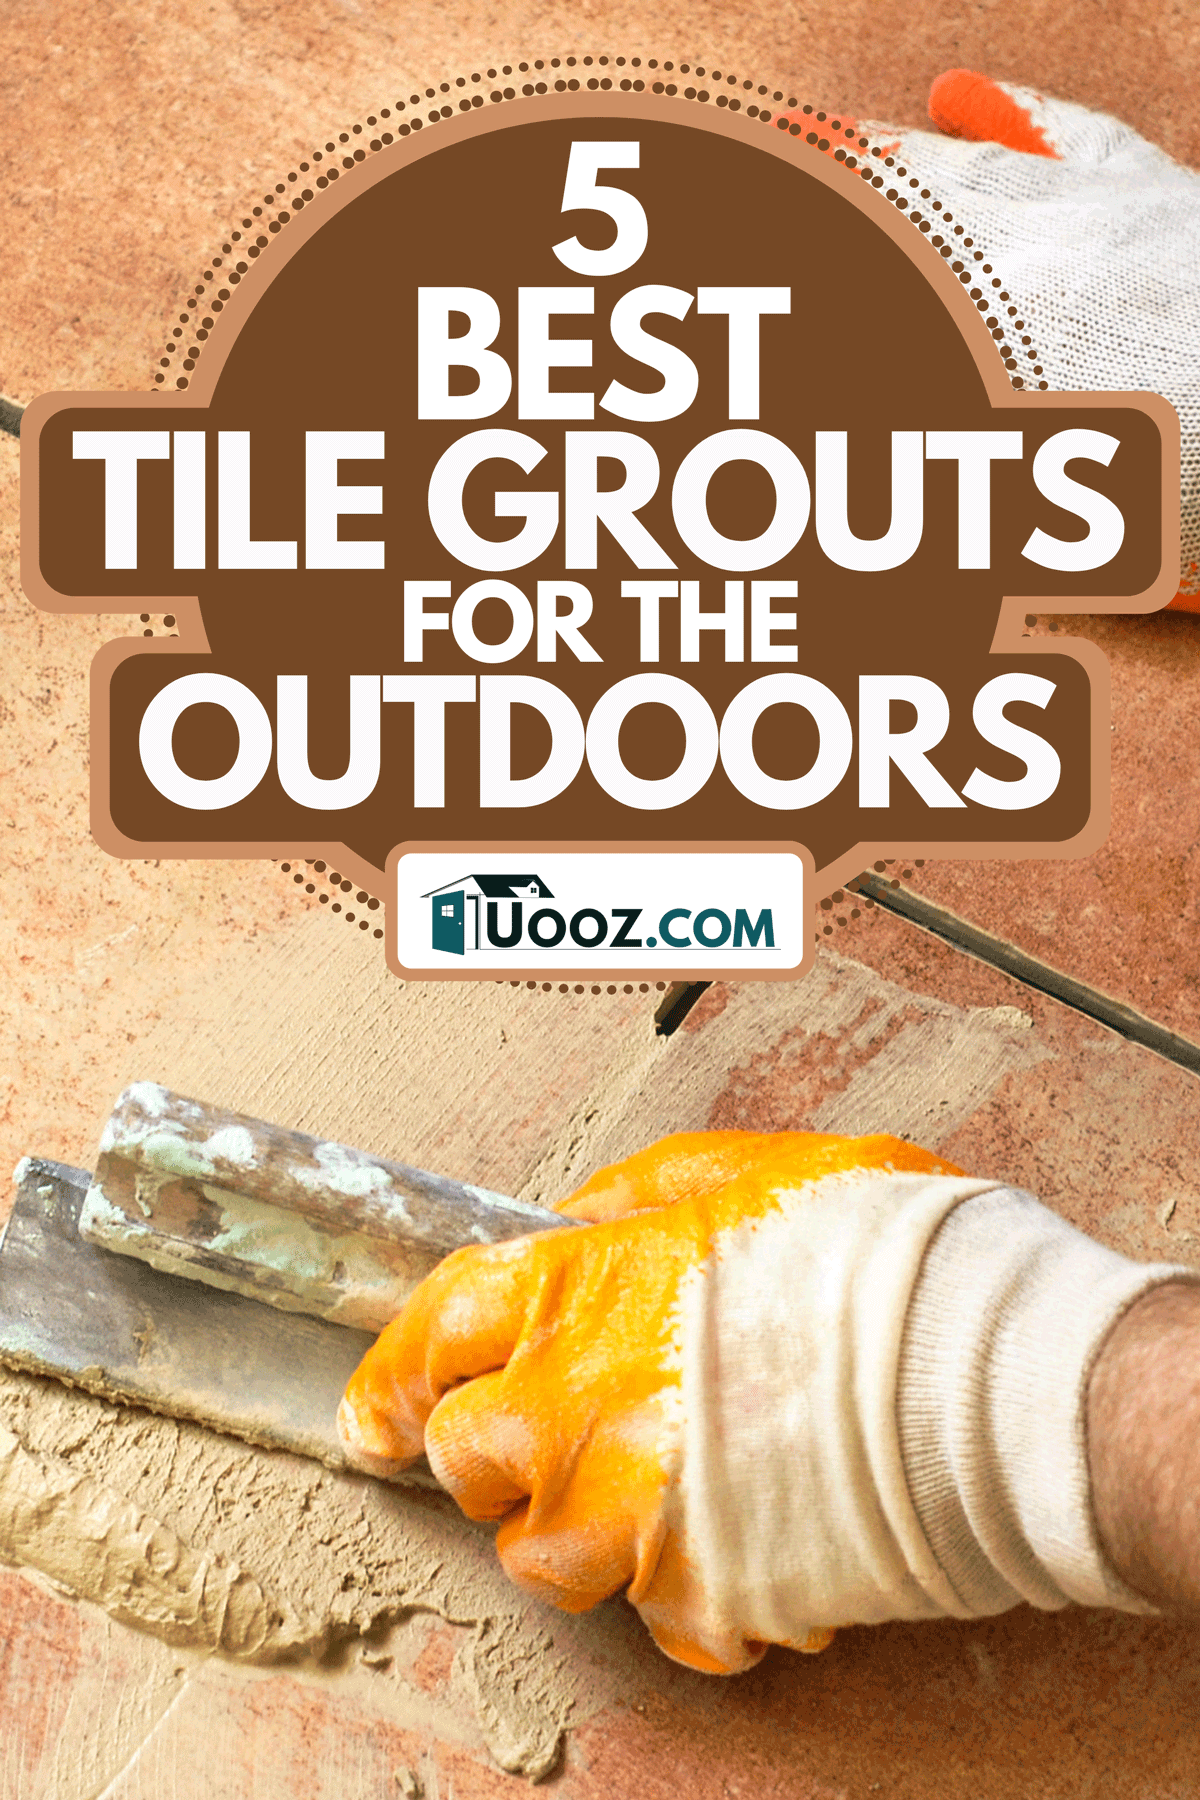 A worker applying tile grout on floor, 5 Best Tile Grouts For The Outdoors